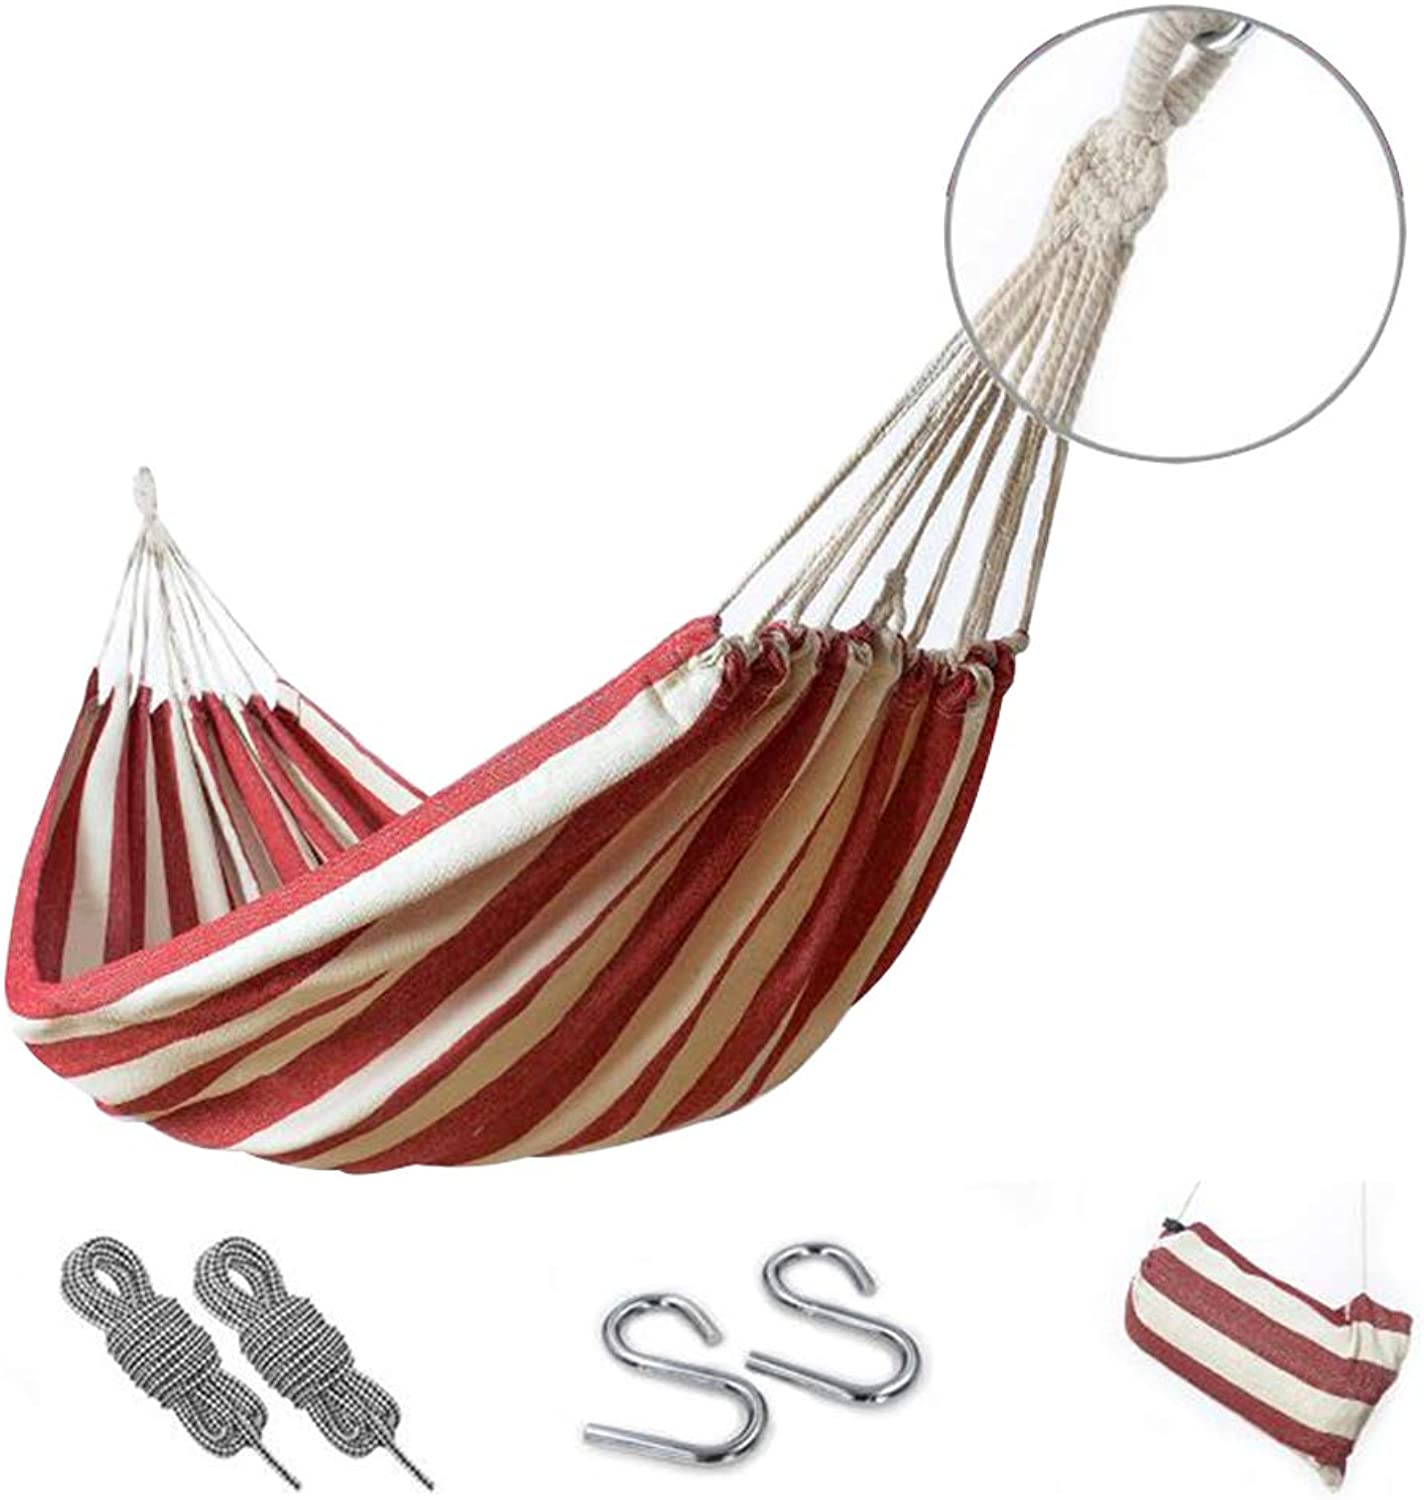 CUUYQ Portable Hammocks, Camping Travel Hammocks with Travel Bag Single Hammock Includes Nylon Straps Camping Hammocks for Outdoor Indoor,Red White_200x100cm 100KG